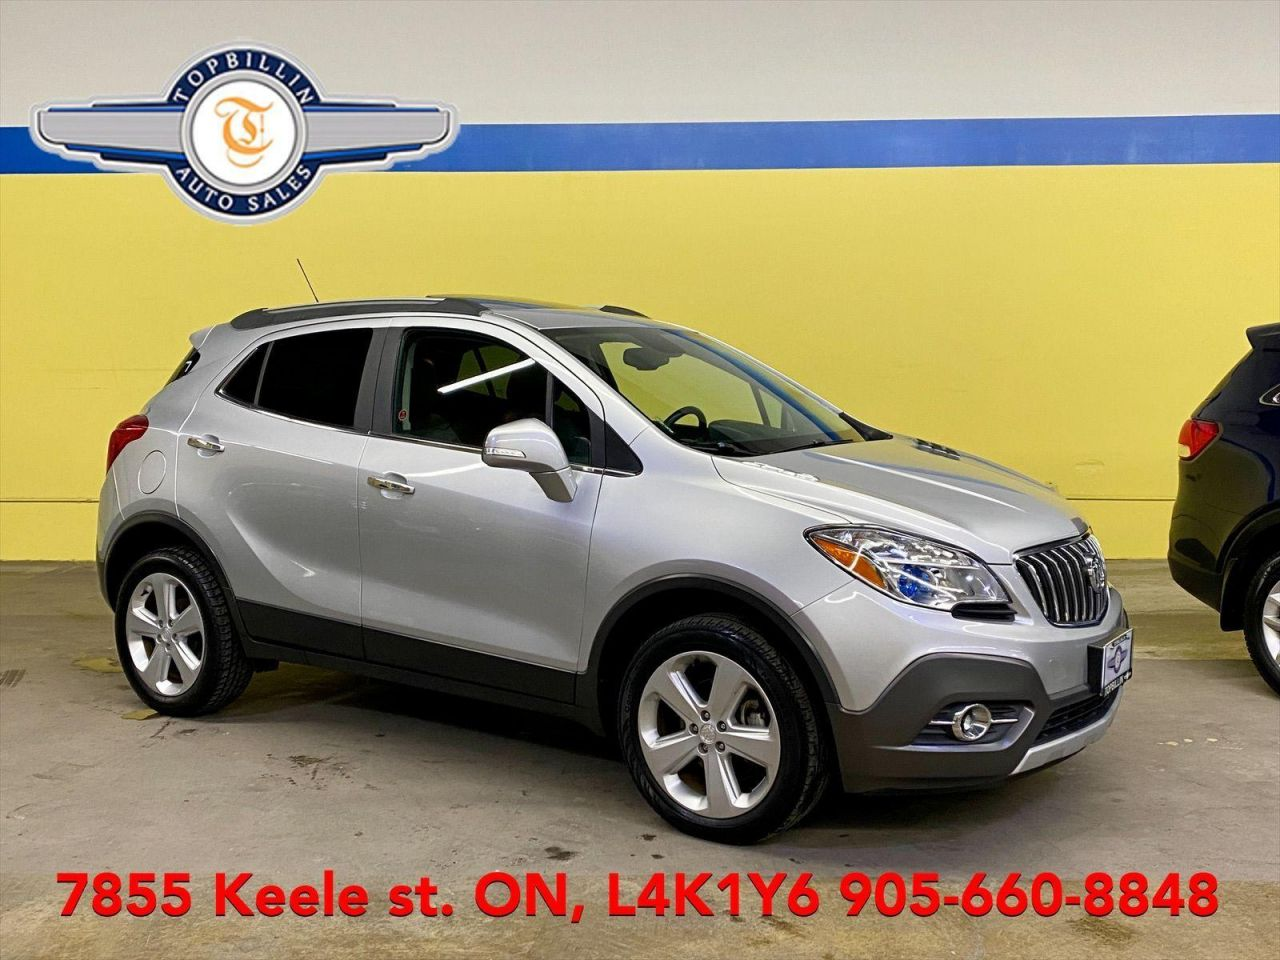 2015 Buick Encore AWD, Leather, Roof, Blind Spot, B-Cam